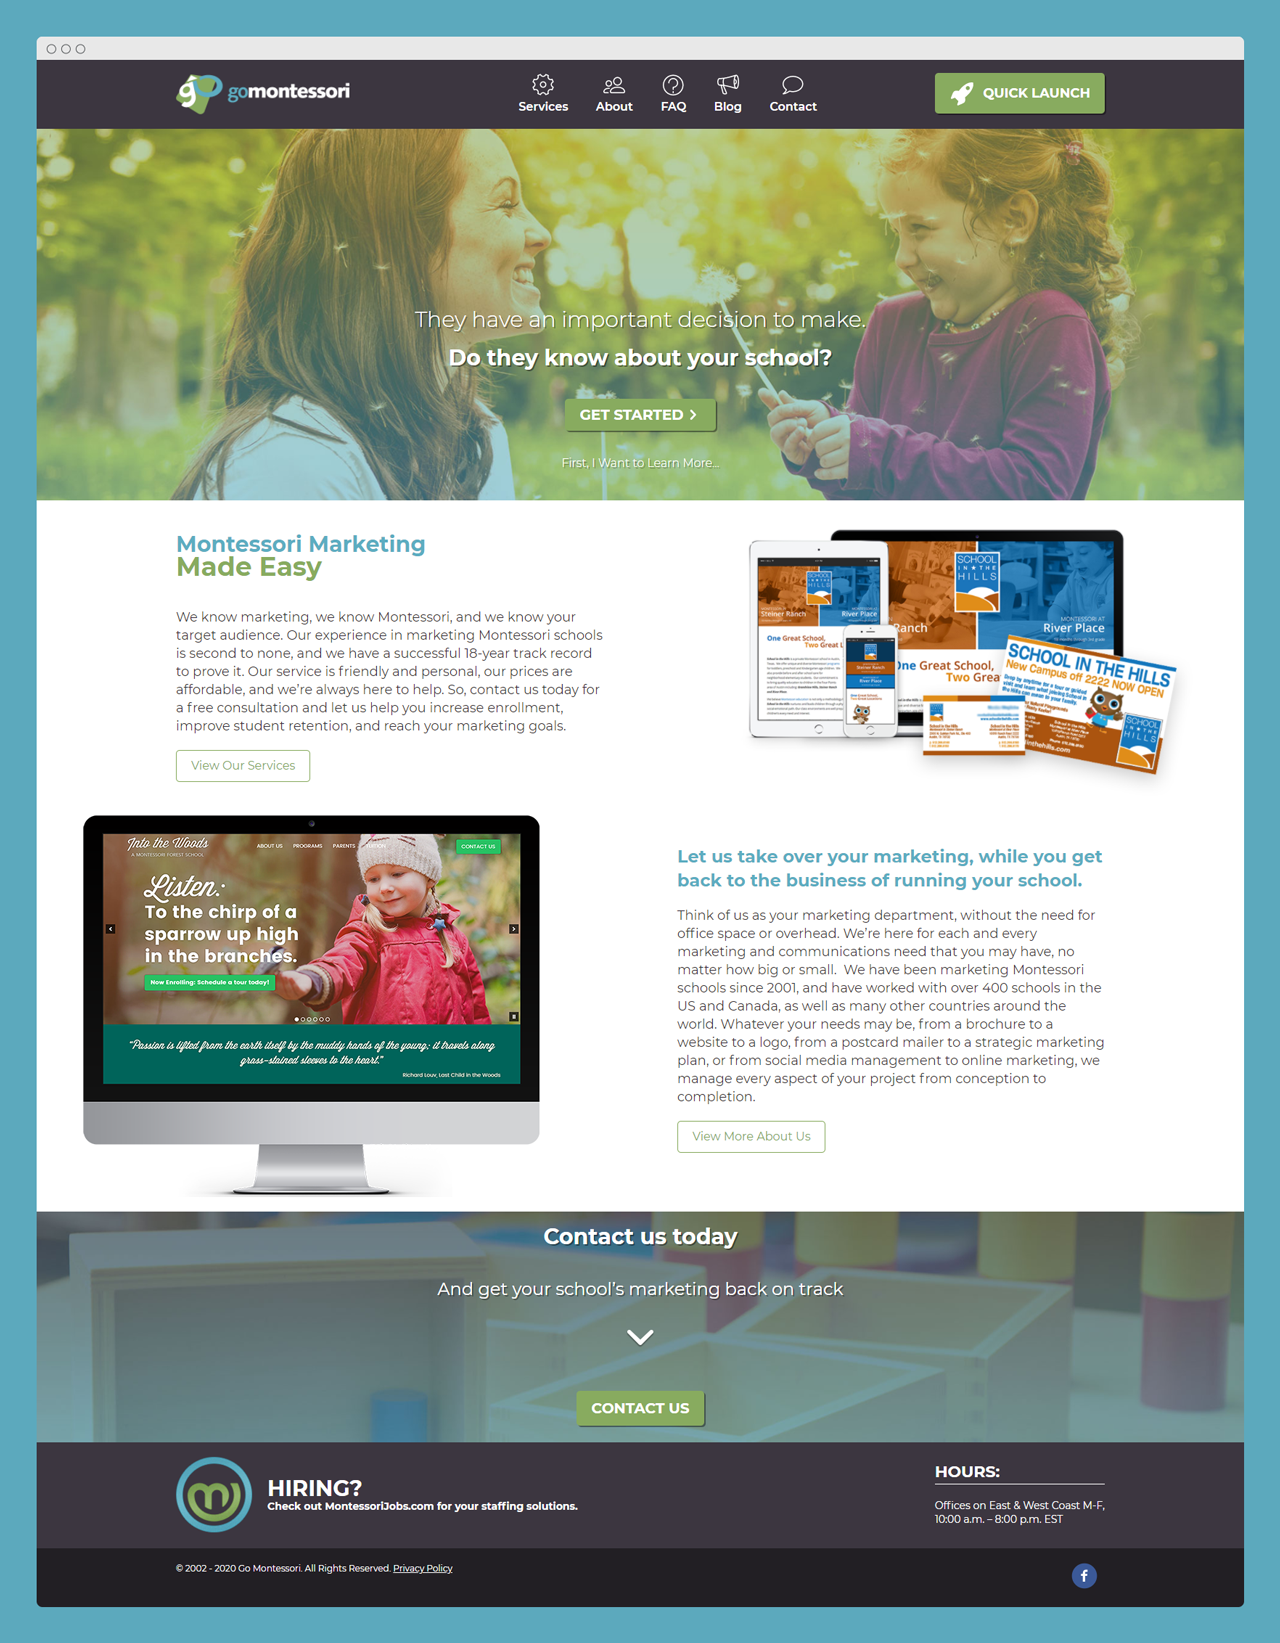 Go Montessori website design